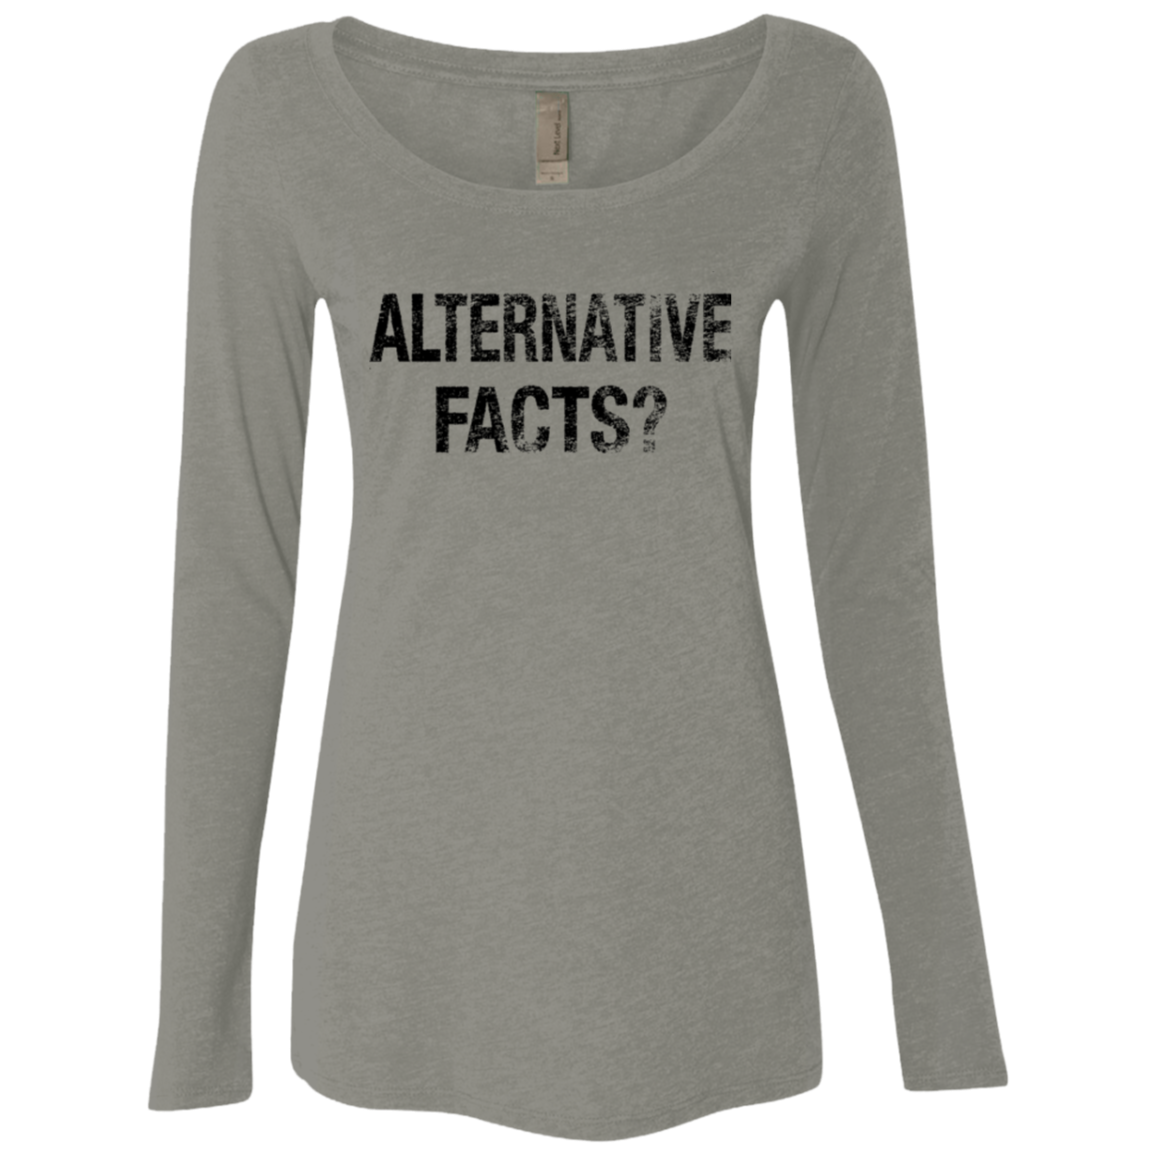 Alternative Facts Women's Long Sleeve Tee - Trendy Tees